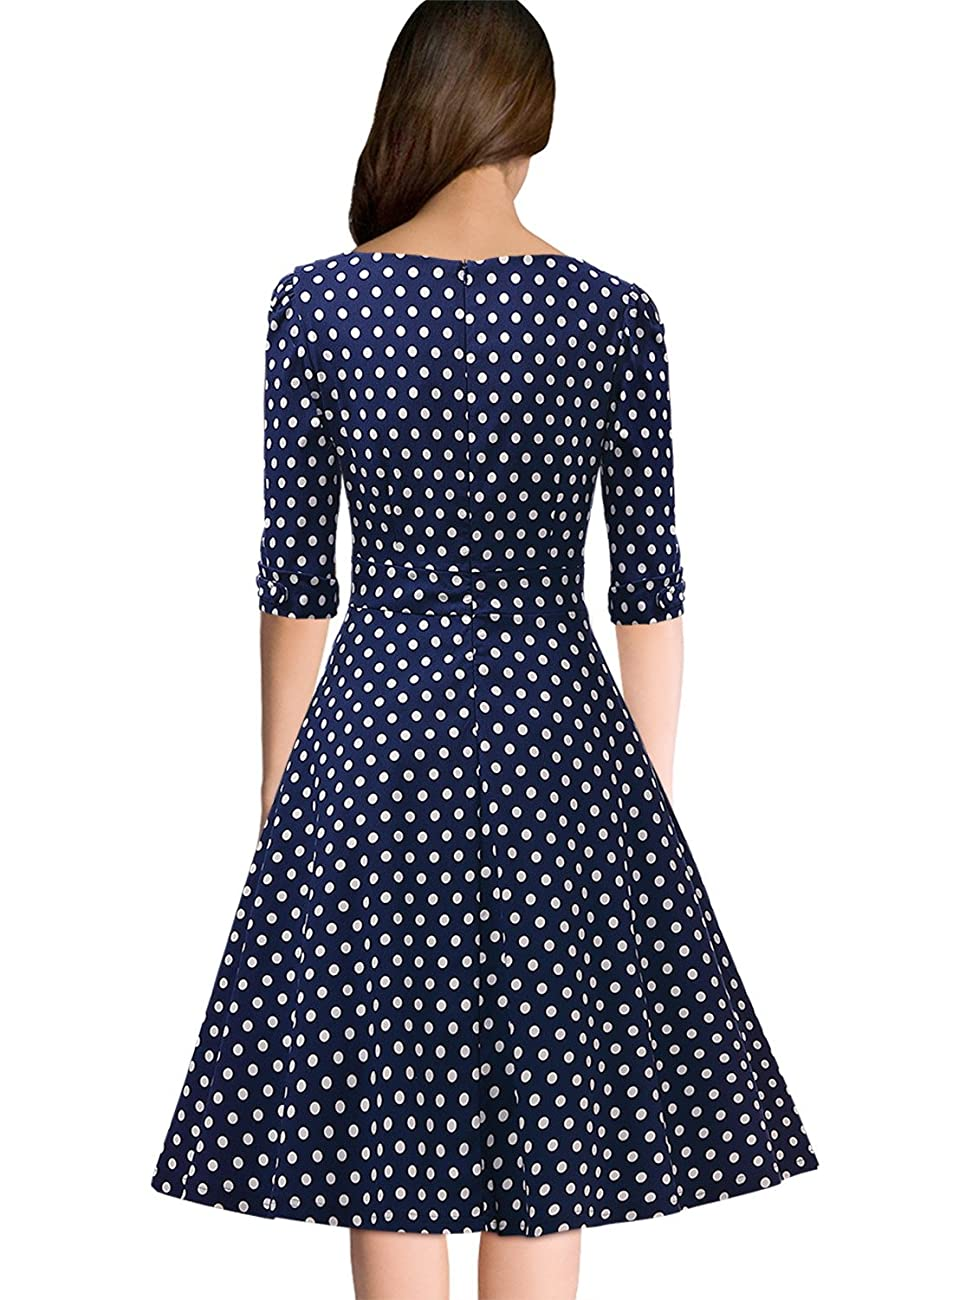 Miusol Women's Retro 1920'S V Neck Polka Dot Half Sleeve Evening Party Swing Dress 1